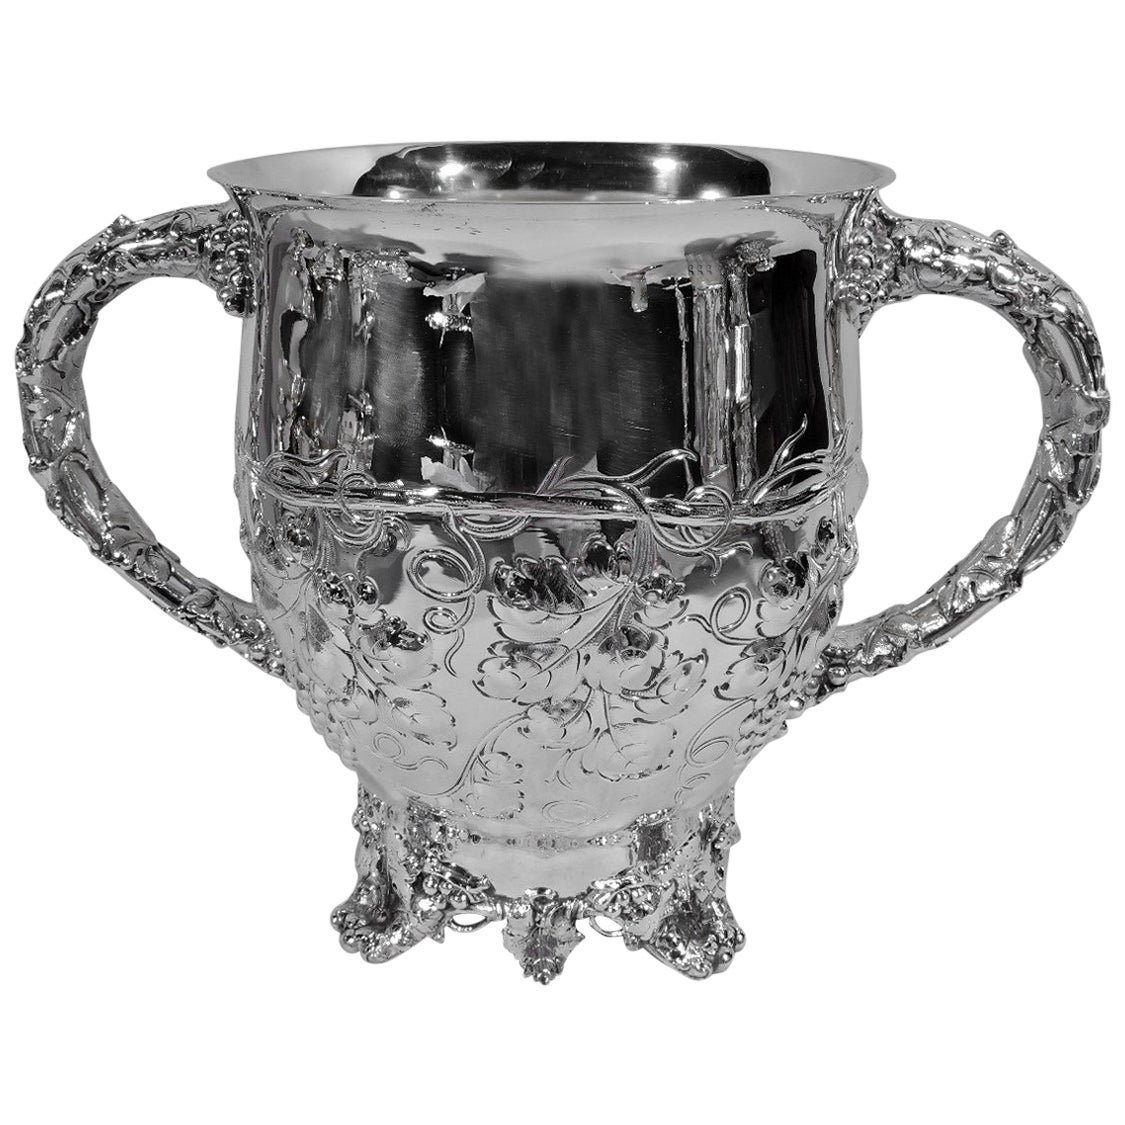 Antique American Sterling Silver Trophy Cup with Grapevine